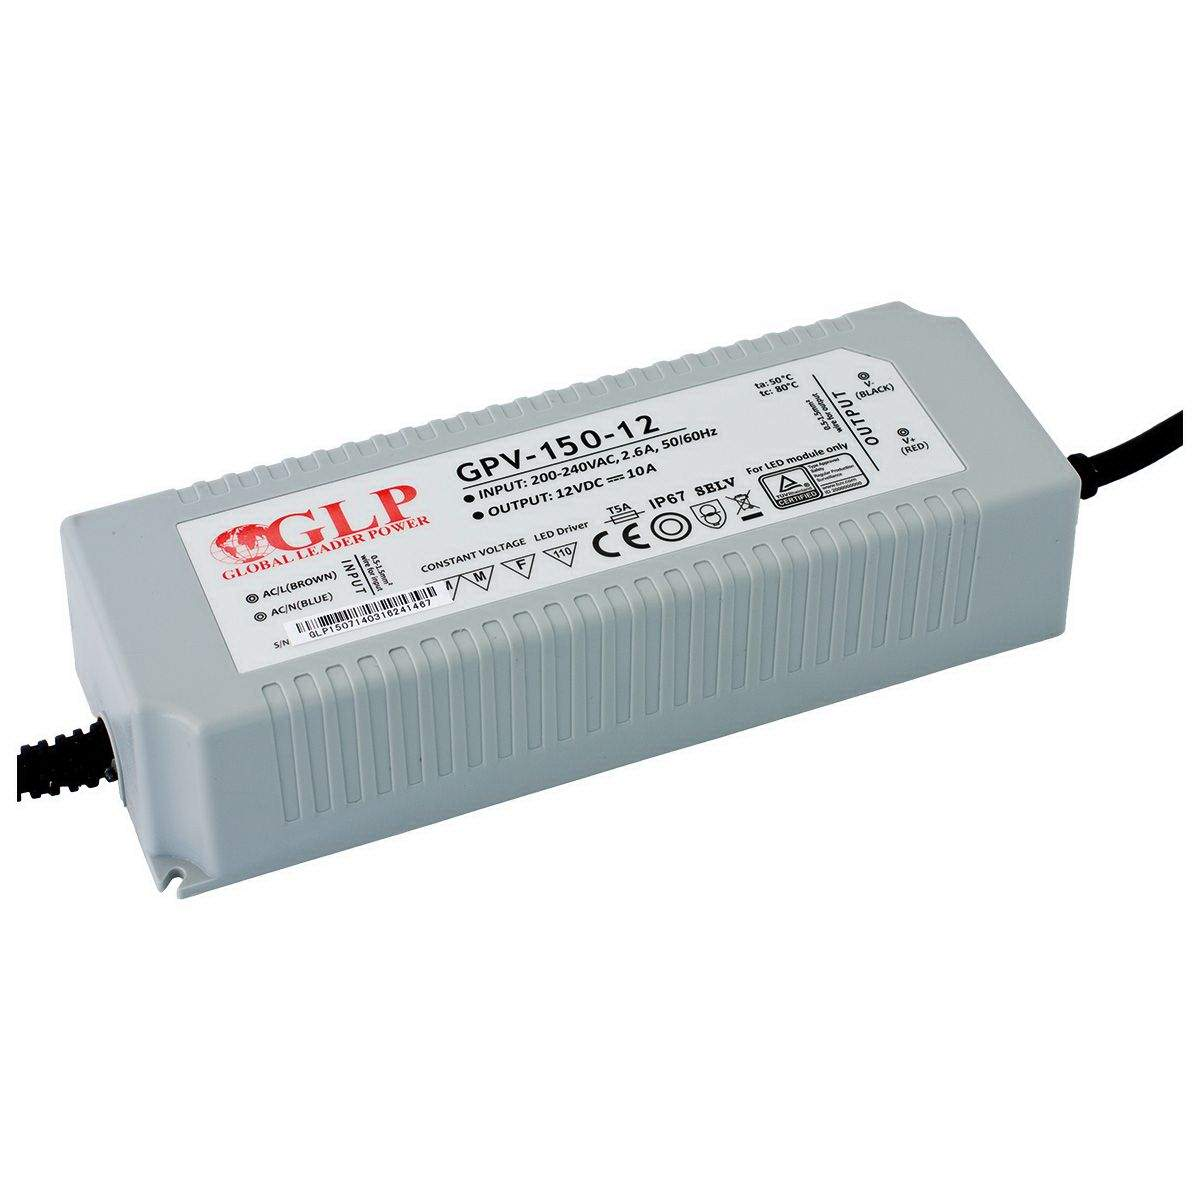 LED Toiteplokk GLP POWER 12V DC GPV-150-12 230V 150W IP67